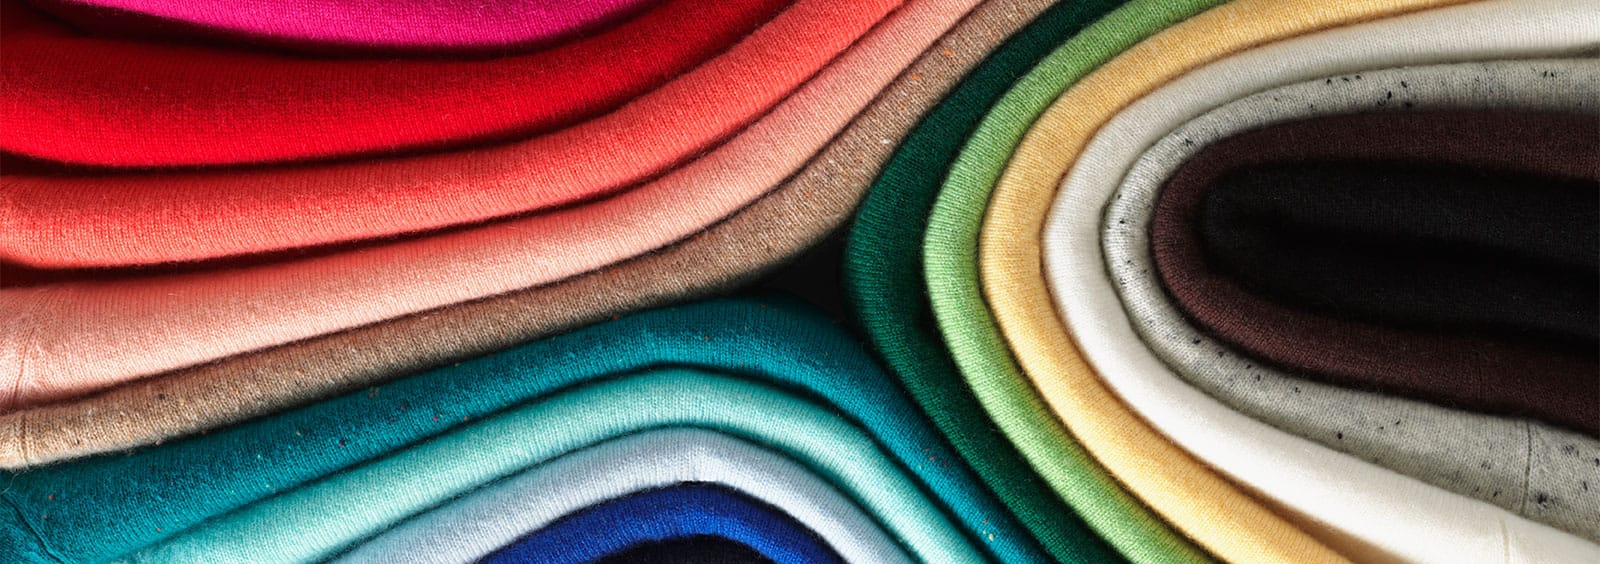 Why Cashmere is Considered a Luxury